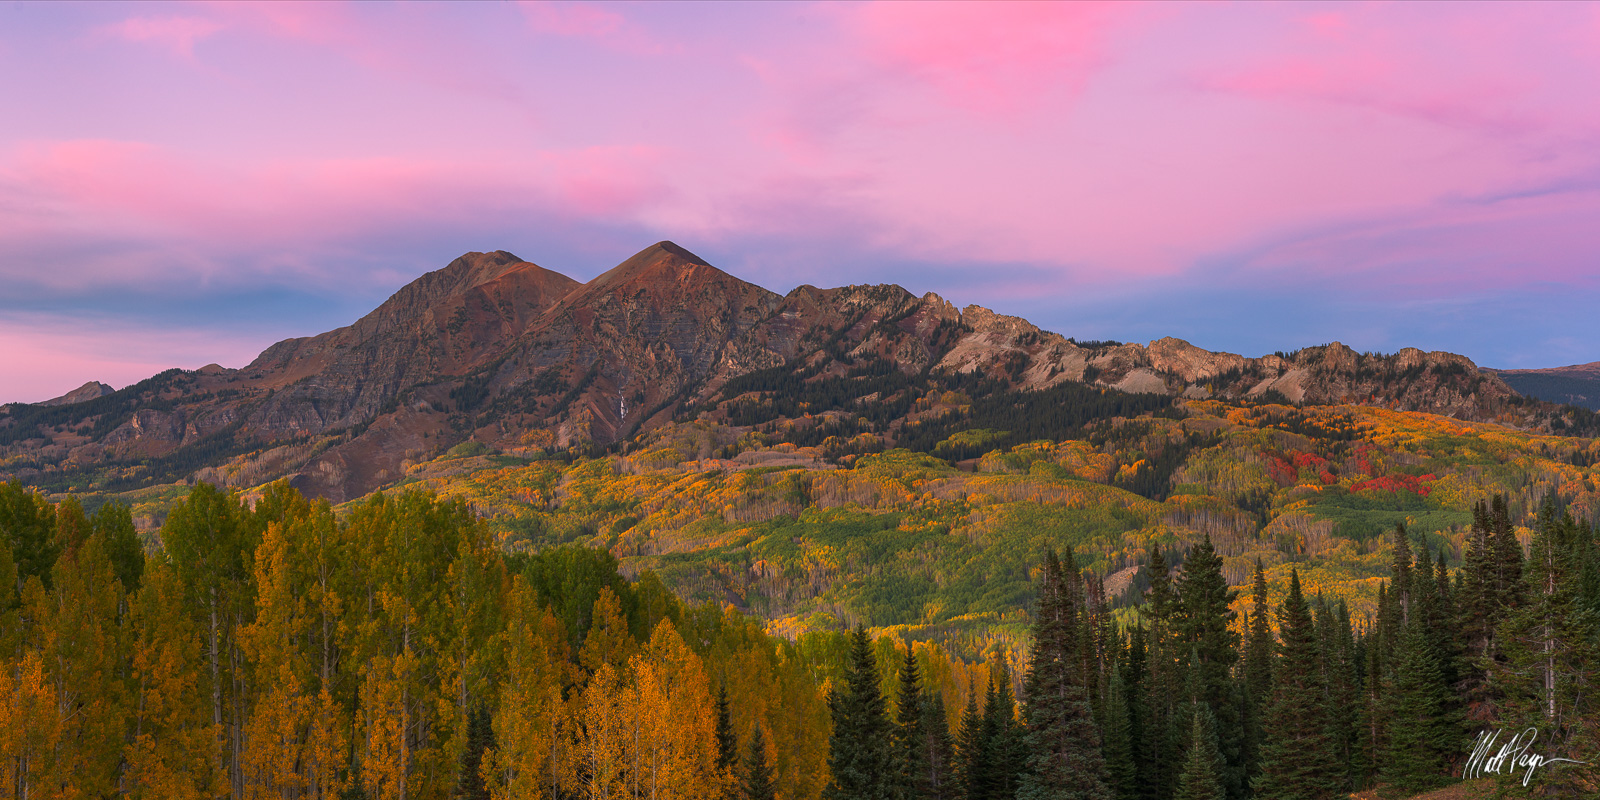 Autumn, Colorado, Crested Butte, Fall, Fall Colors, Kebler Pass, Landscape, Mount Owen, Mountains, Ruby Mountain, unique, Dyke, rare, panorama, photo